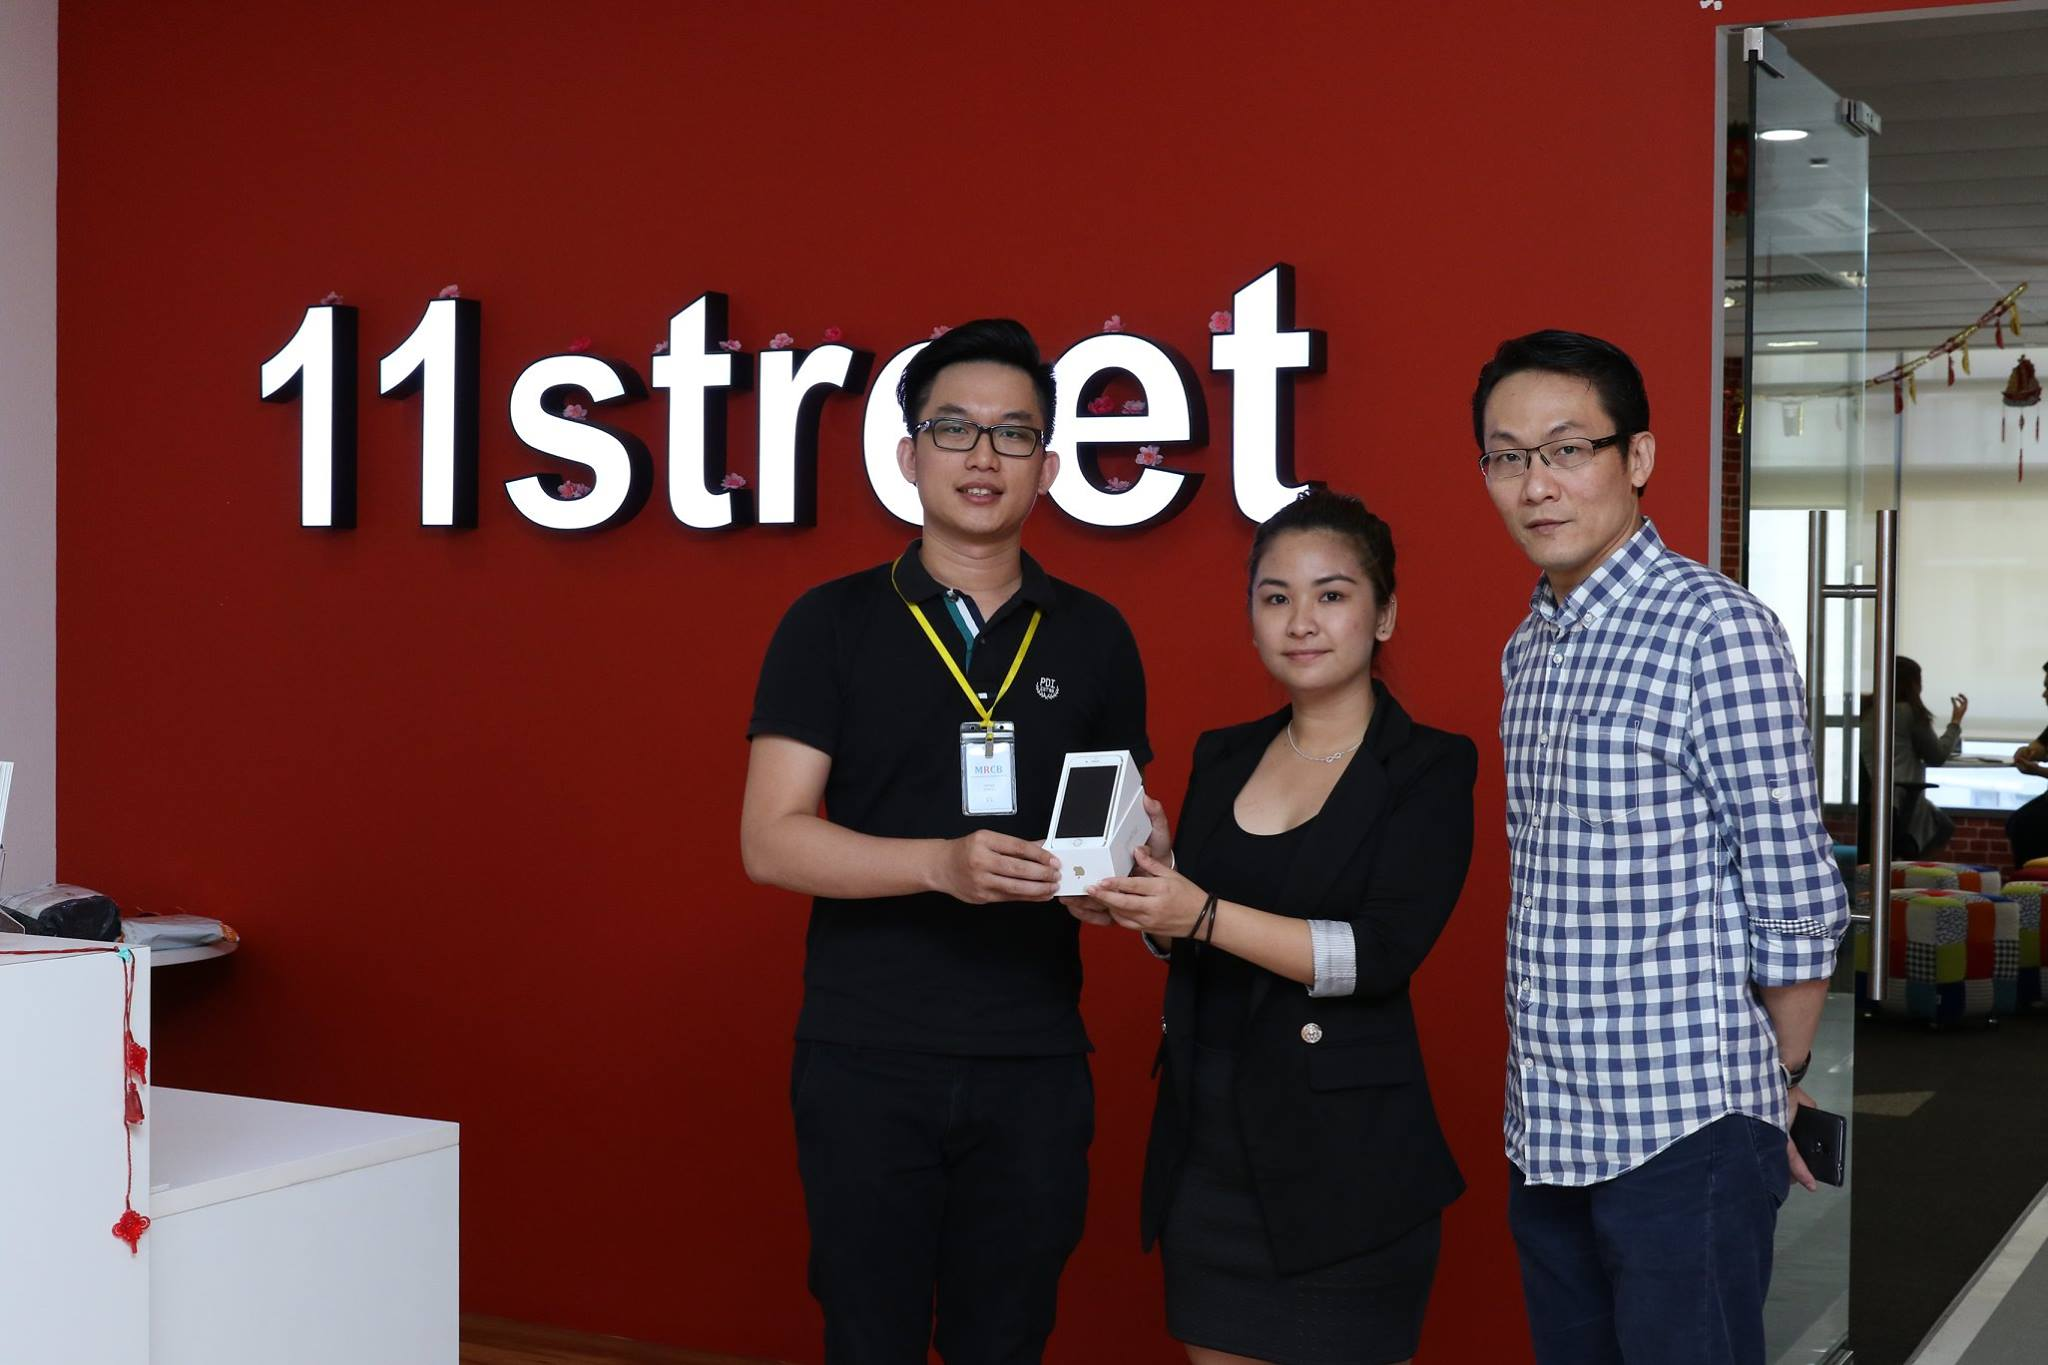 Alans Ng (left) with his brand new iPhone 6s.